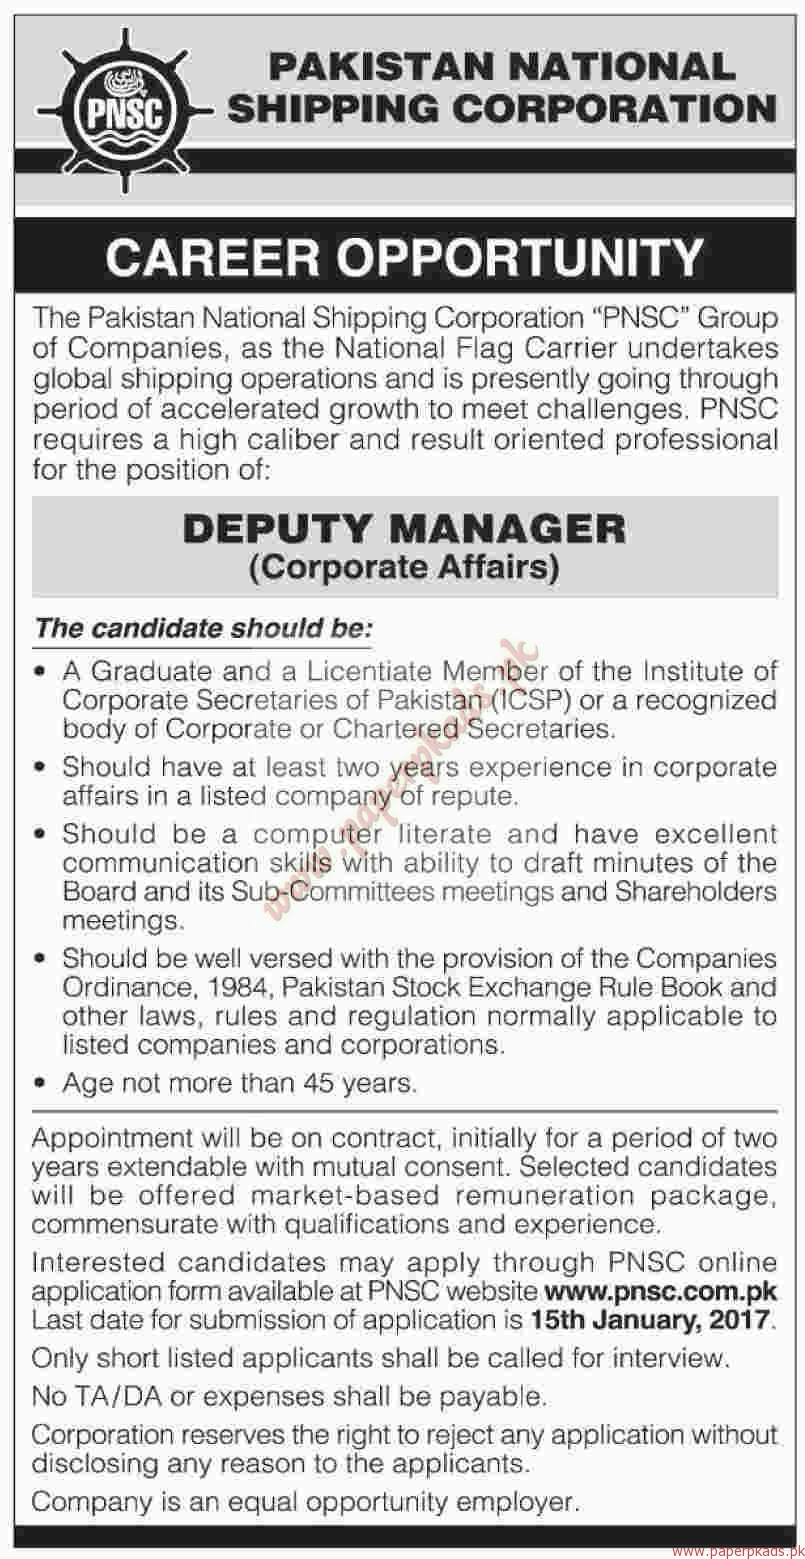 Pakistan National Shipping Corporation Jobs - Dawn Jobs ads 01 January 2017